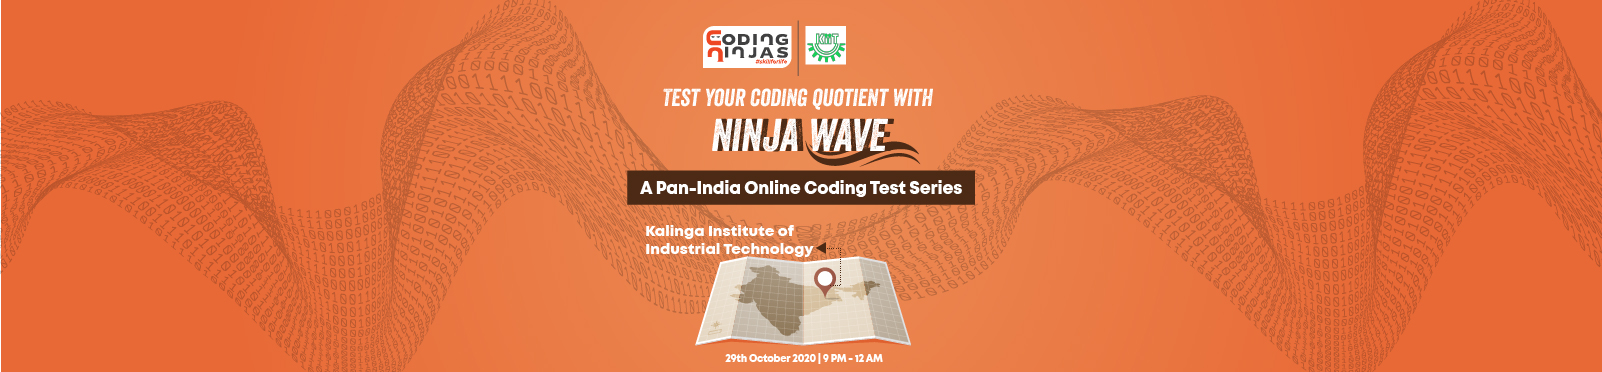 Ninja Wave at Kalinga Institute of Industrial Technology